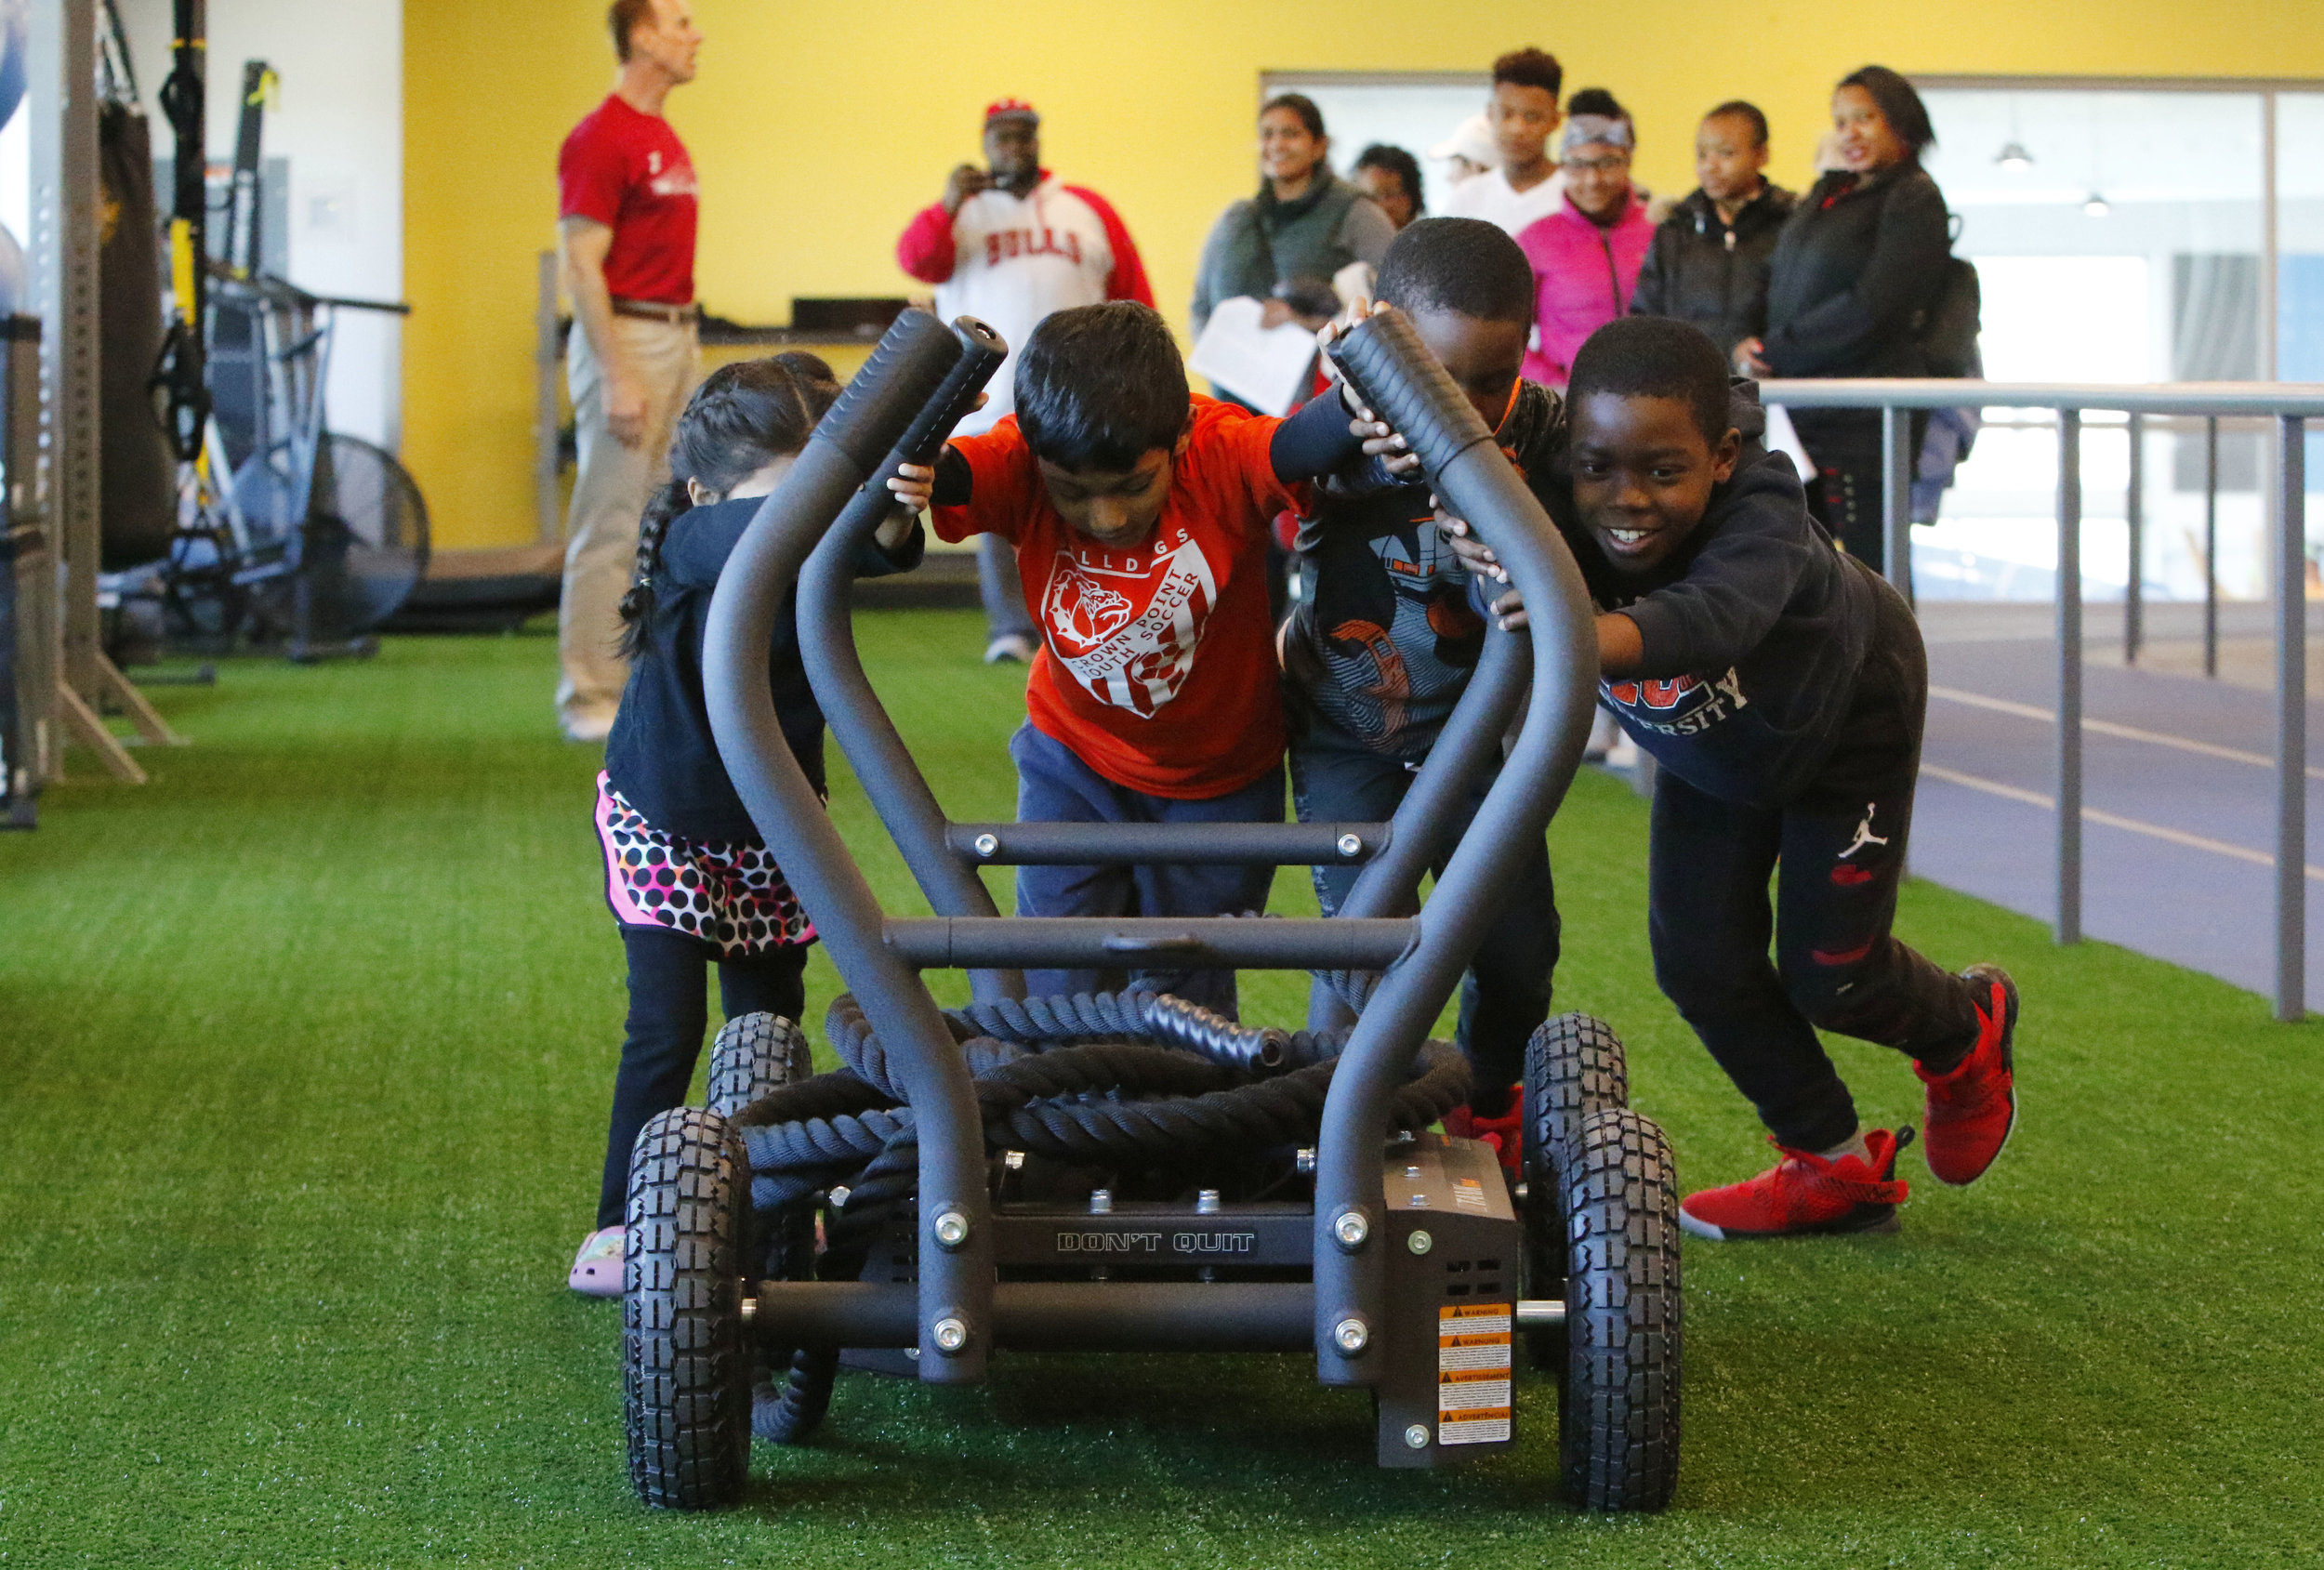 Kids join together to push a sled during a tour of the amenities at the Dean and Barbara White Southlake YMCA in Crown Point.